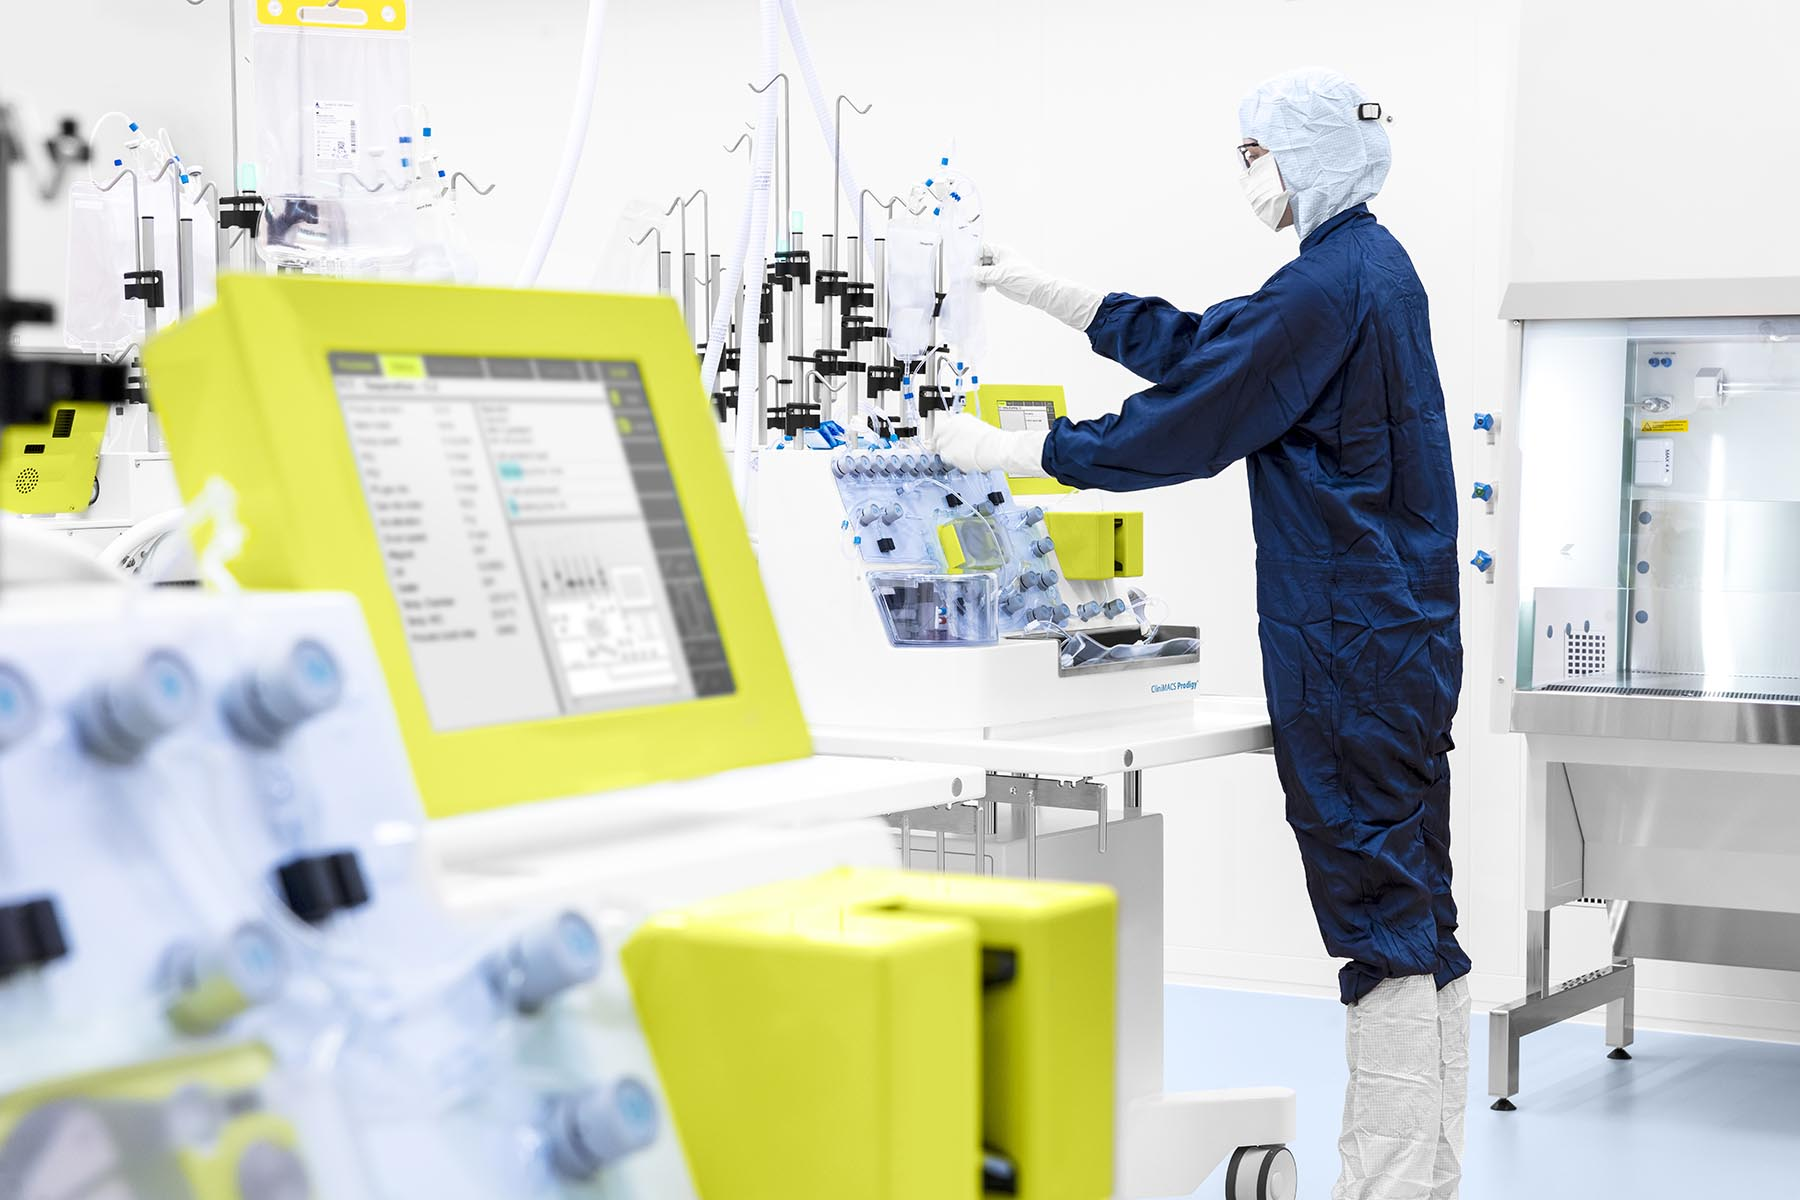 The CliniMACS Cell Factory at Miltenyi Biotec's facilities in Germany automates the production of cell therapy for patients with blood cancer.